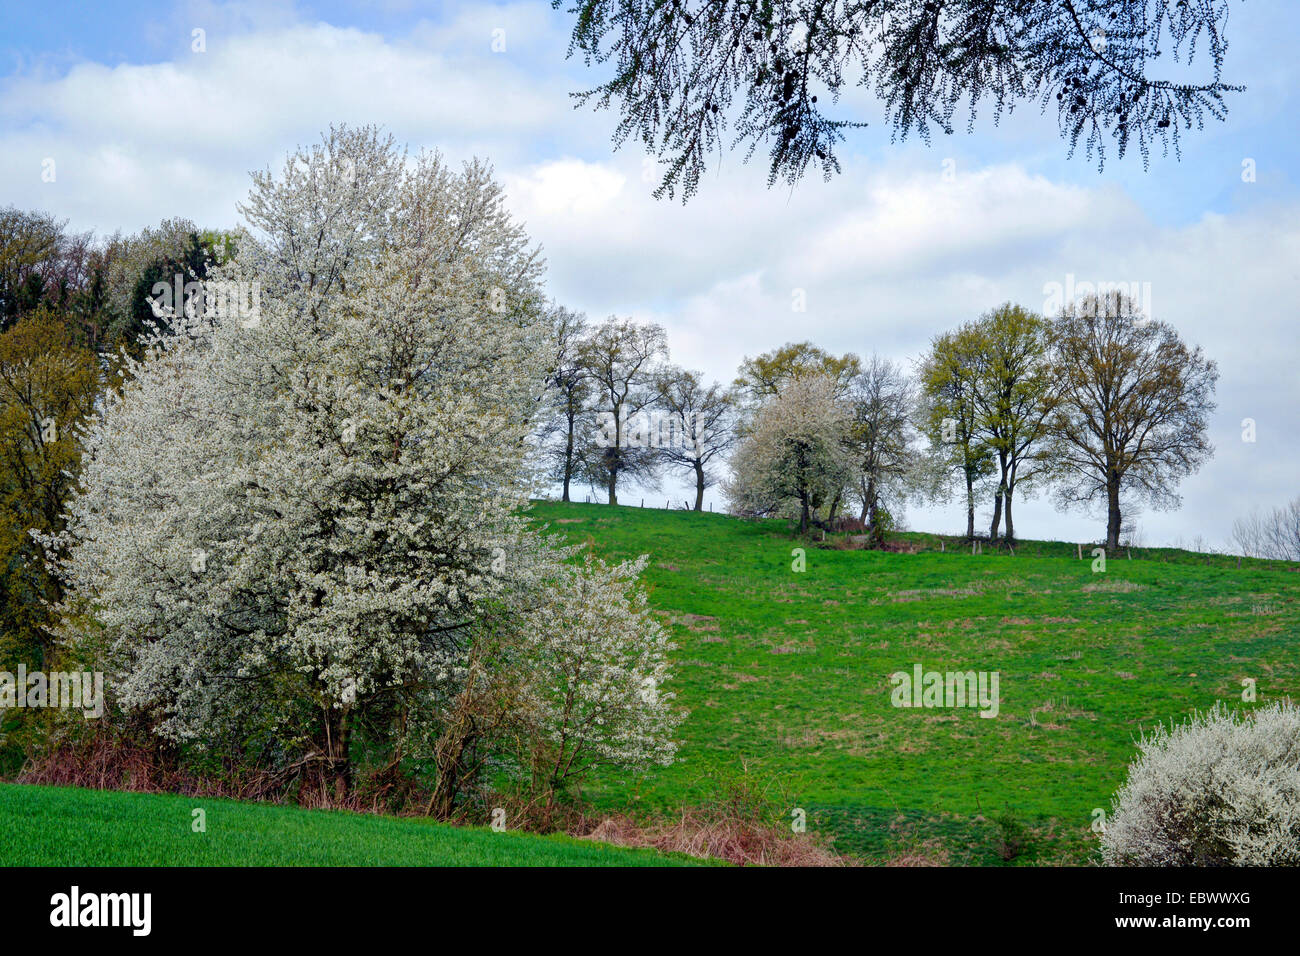 Wild cherry, Sweet cherry, gean, mazzard (Prunus avium), blooming blackthorns and wild cherry trees, Germany, North - Stock Image